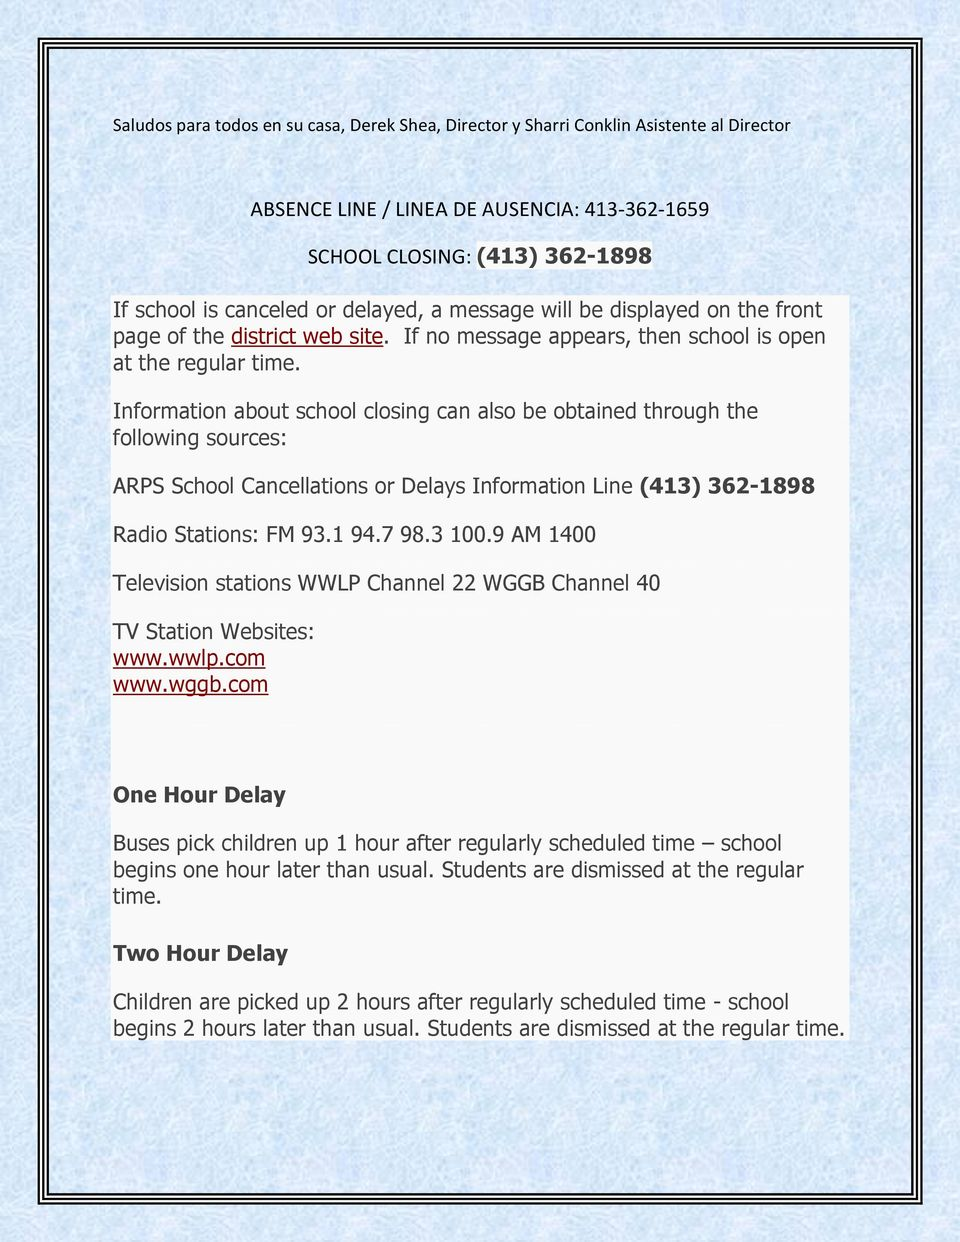 Information about school closing can also be obtained through the following sources: ARPS School Cancellations or Delays Information Line (413) 362-1898 Radio Stations: FM 93.1 94.7 98.3 100.